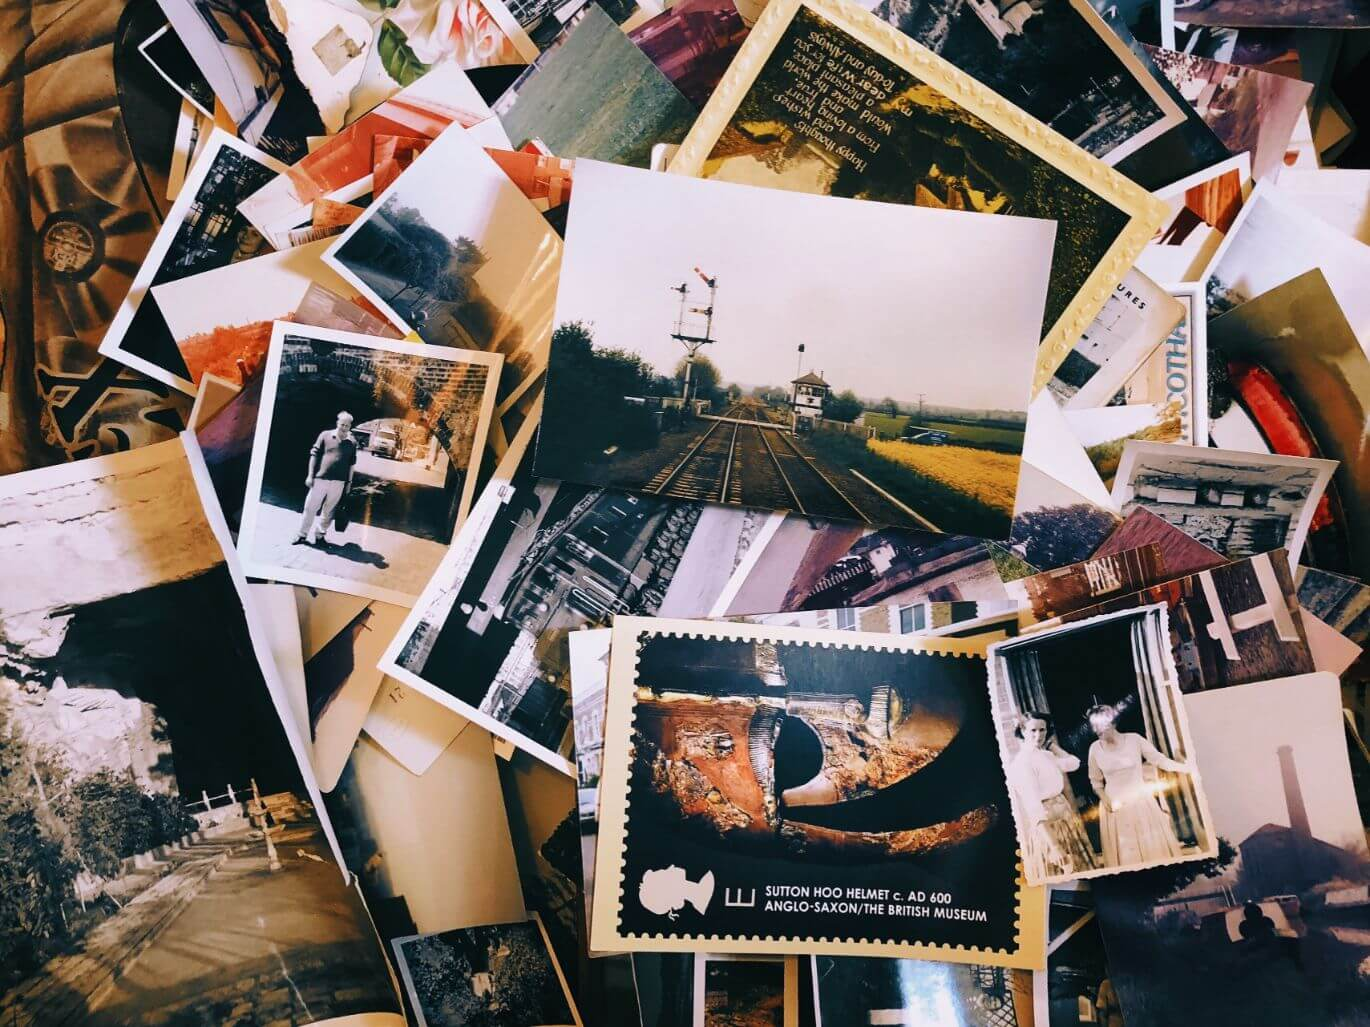 lots of photographs